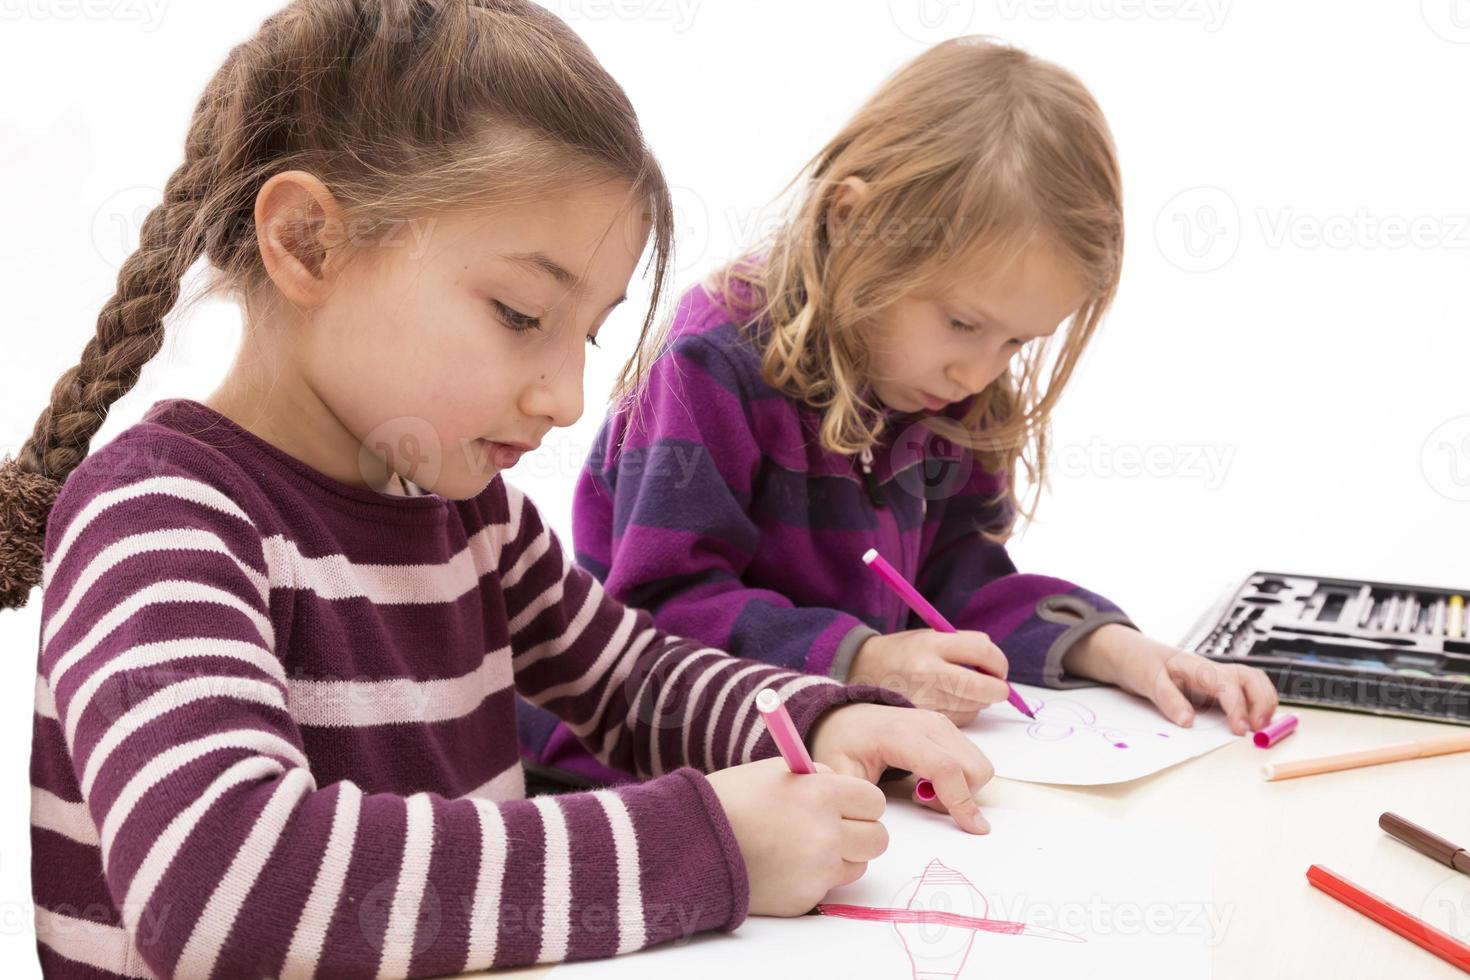 Two drawing baby girls, Asian and Caucasian photo